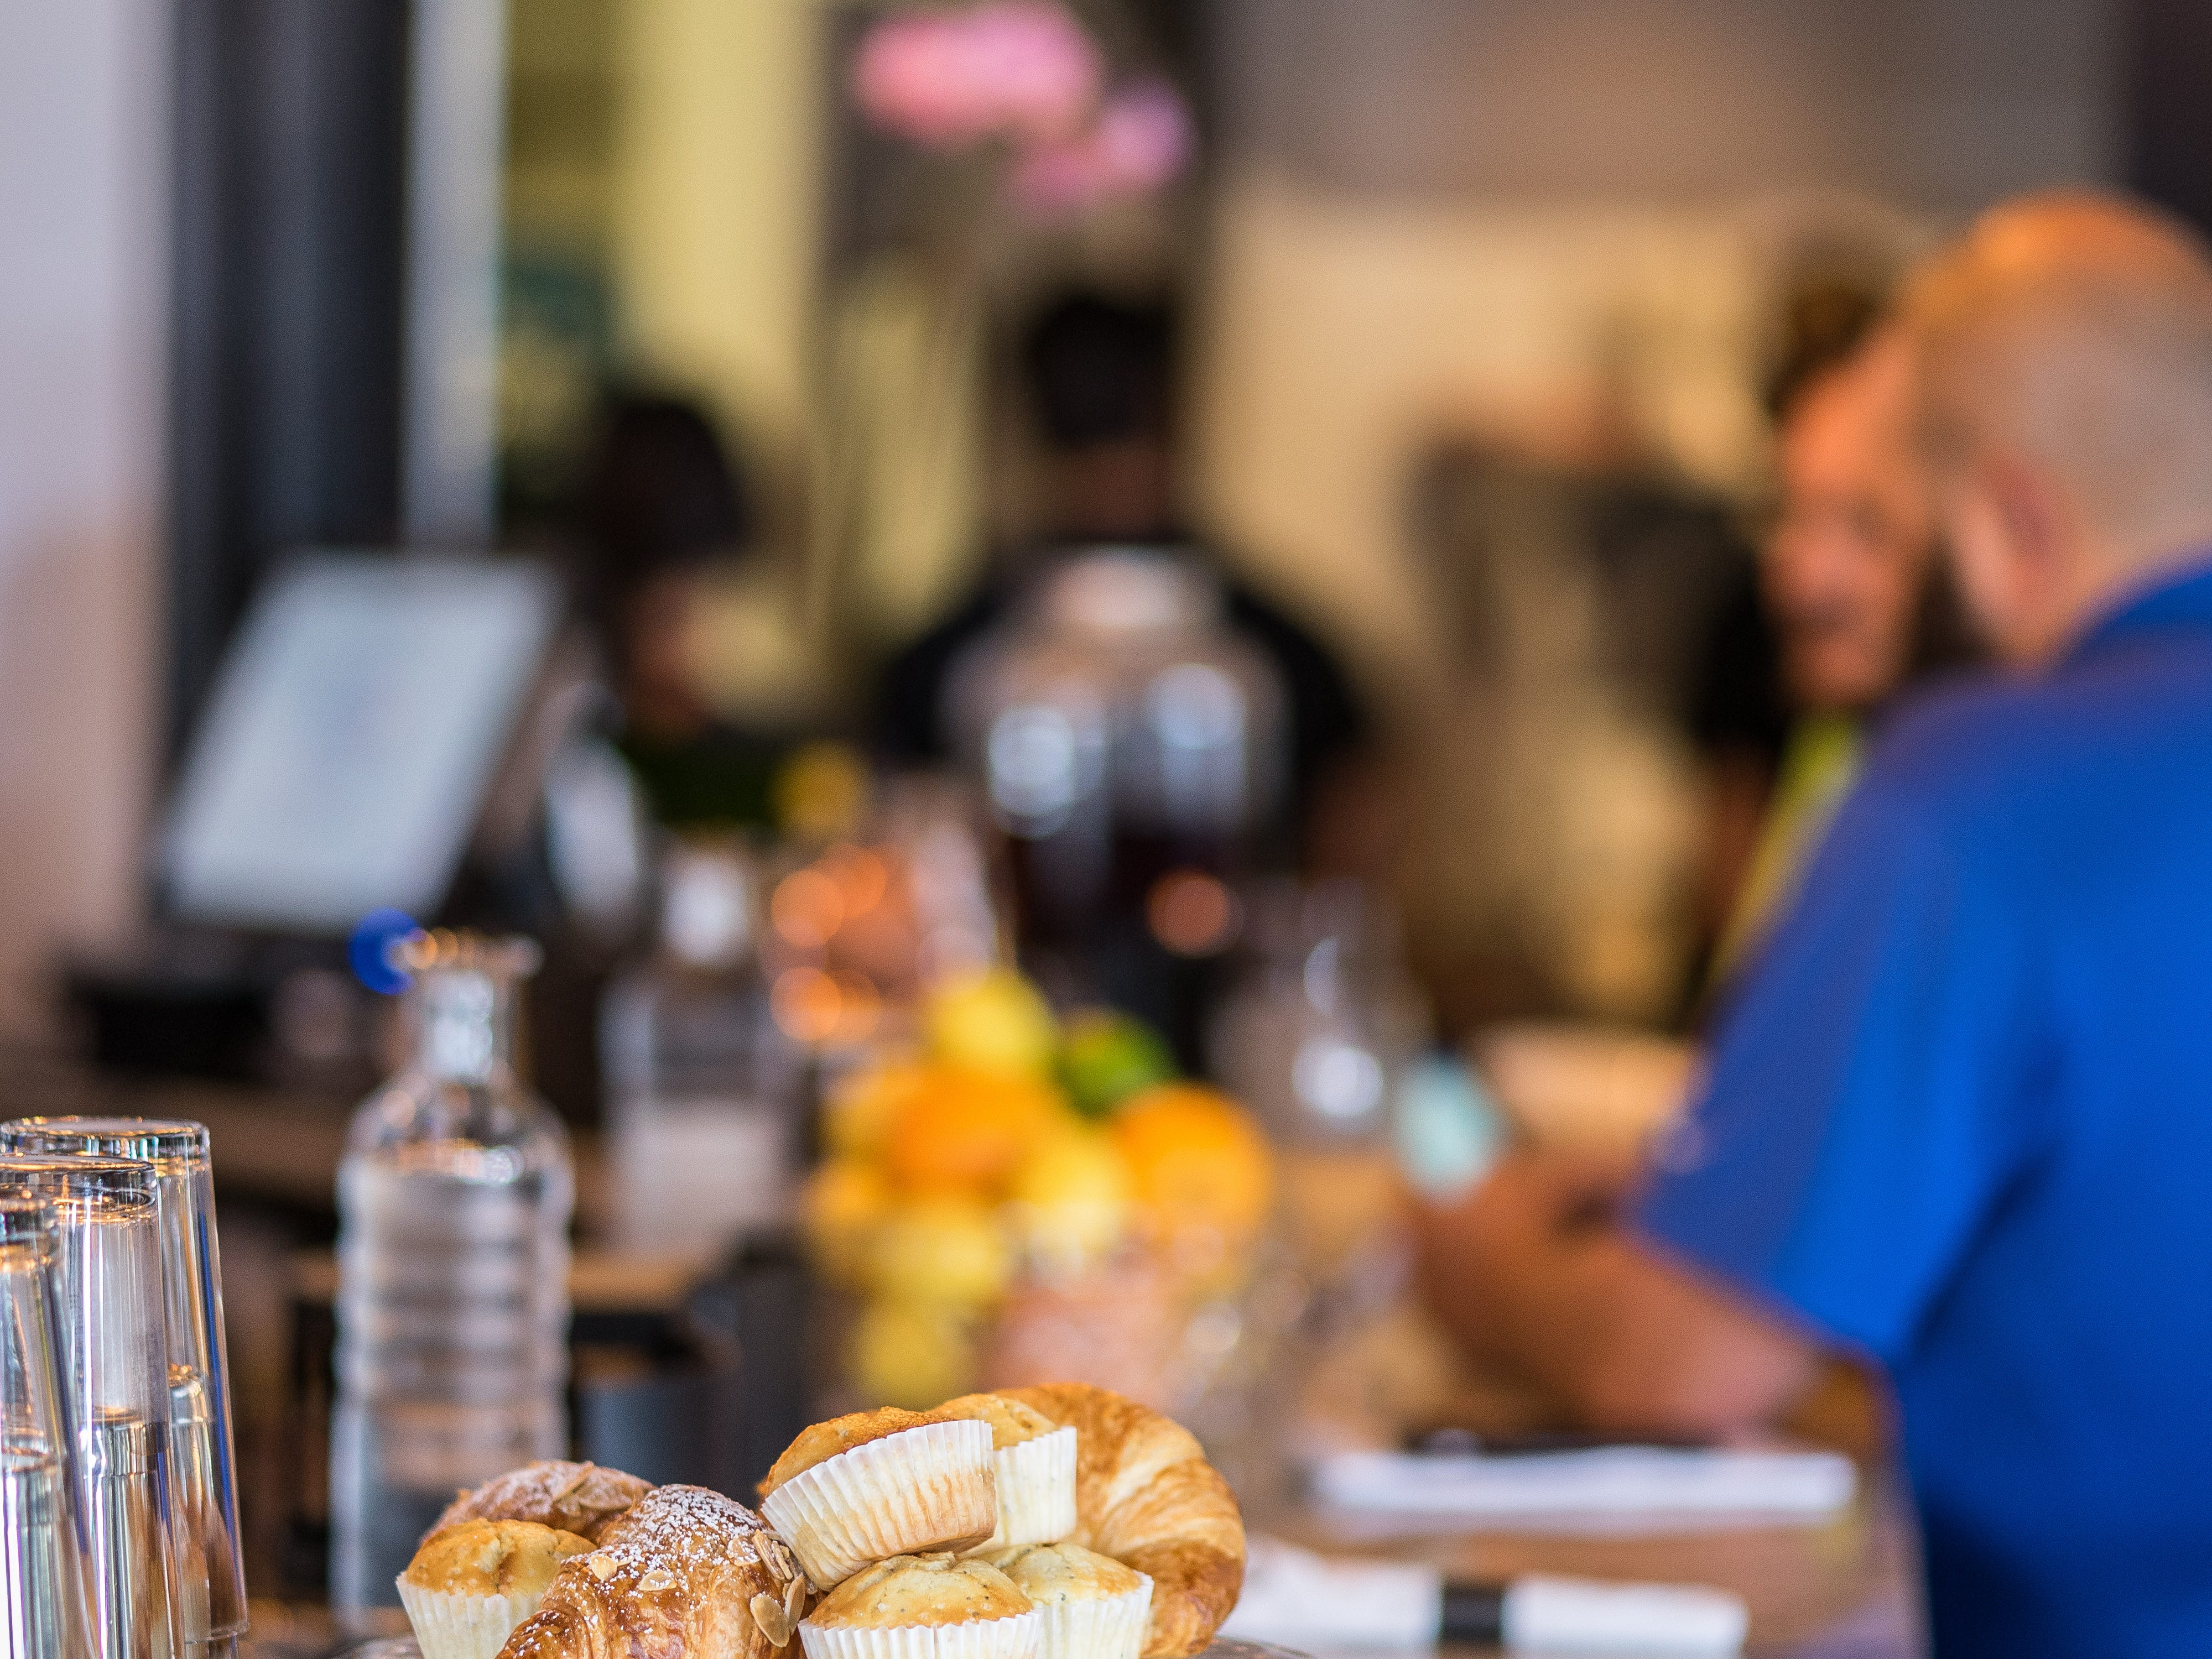 Pastries and fruit line the bar at George Bistro + Bar on Friday, Sept. 28, 2018.